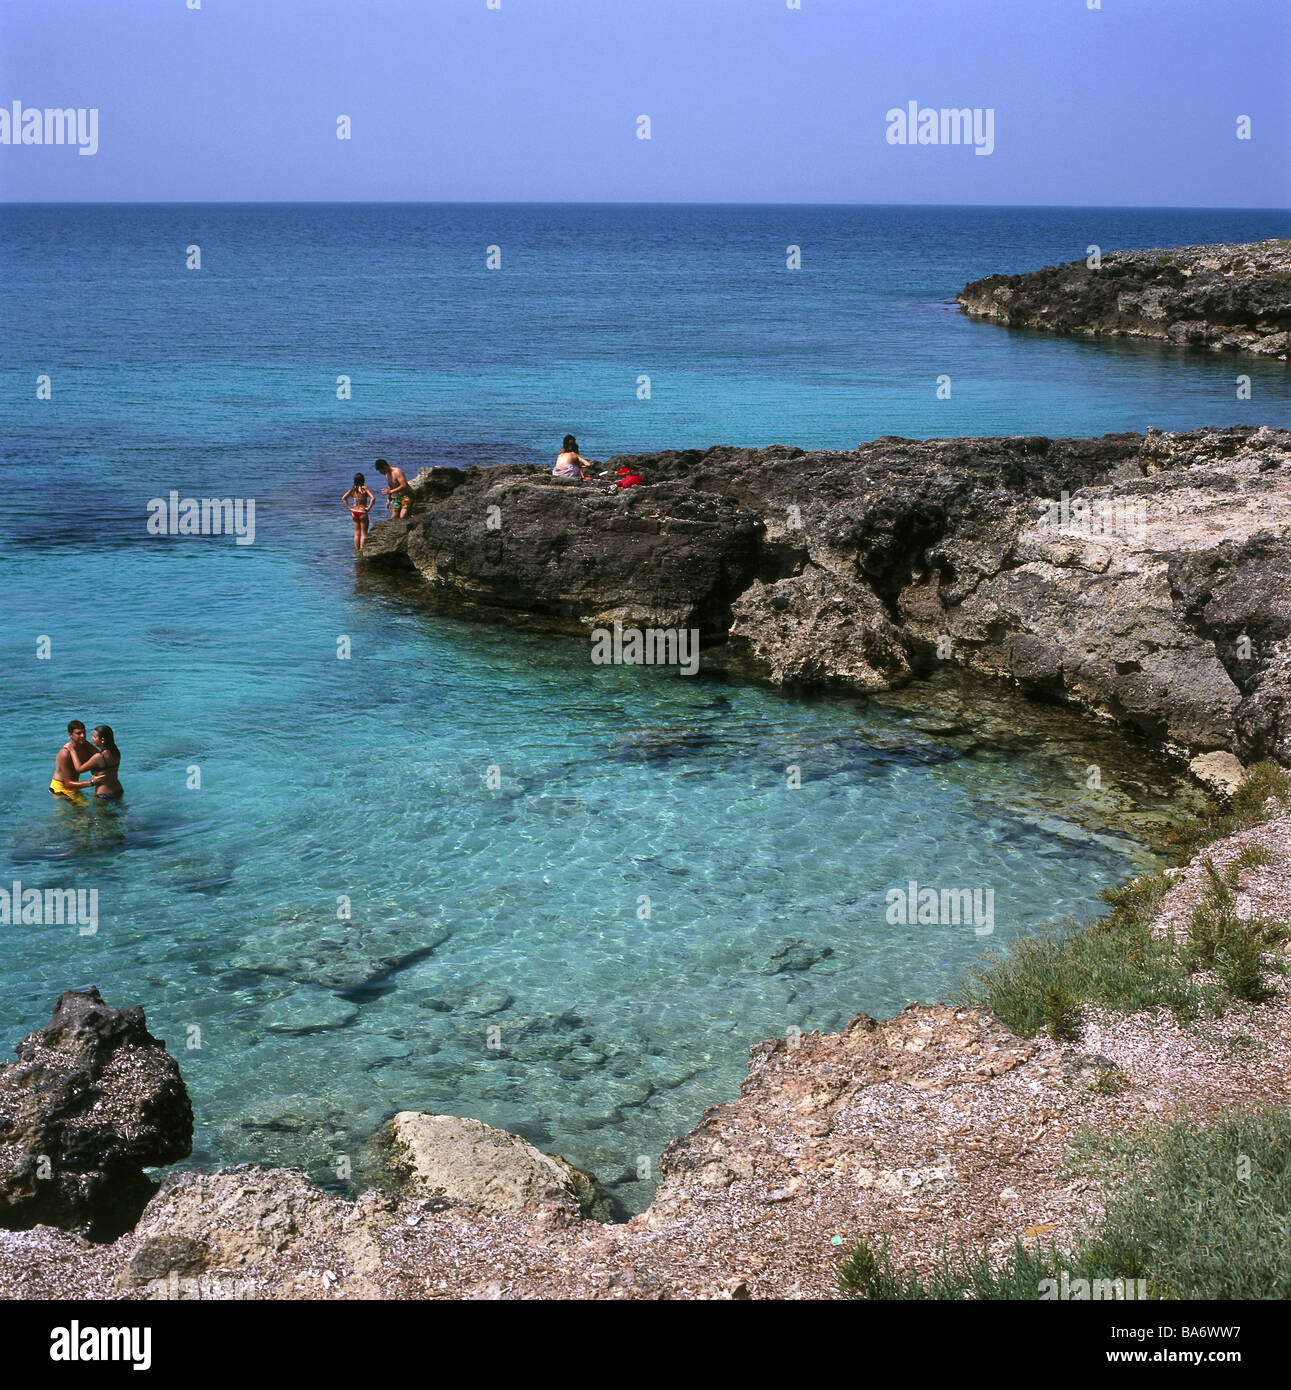 Italy Apulien Capilungo rock-coast swimmers no models release South-Italy southern Salento coast tourists bath-fun - Stock Image